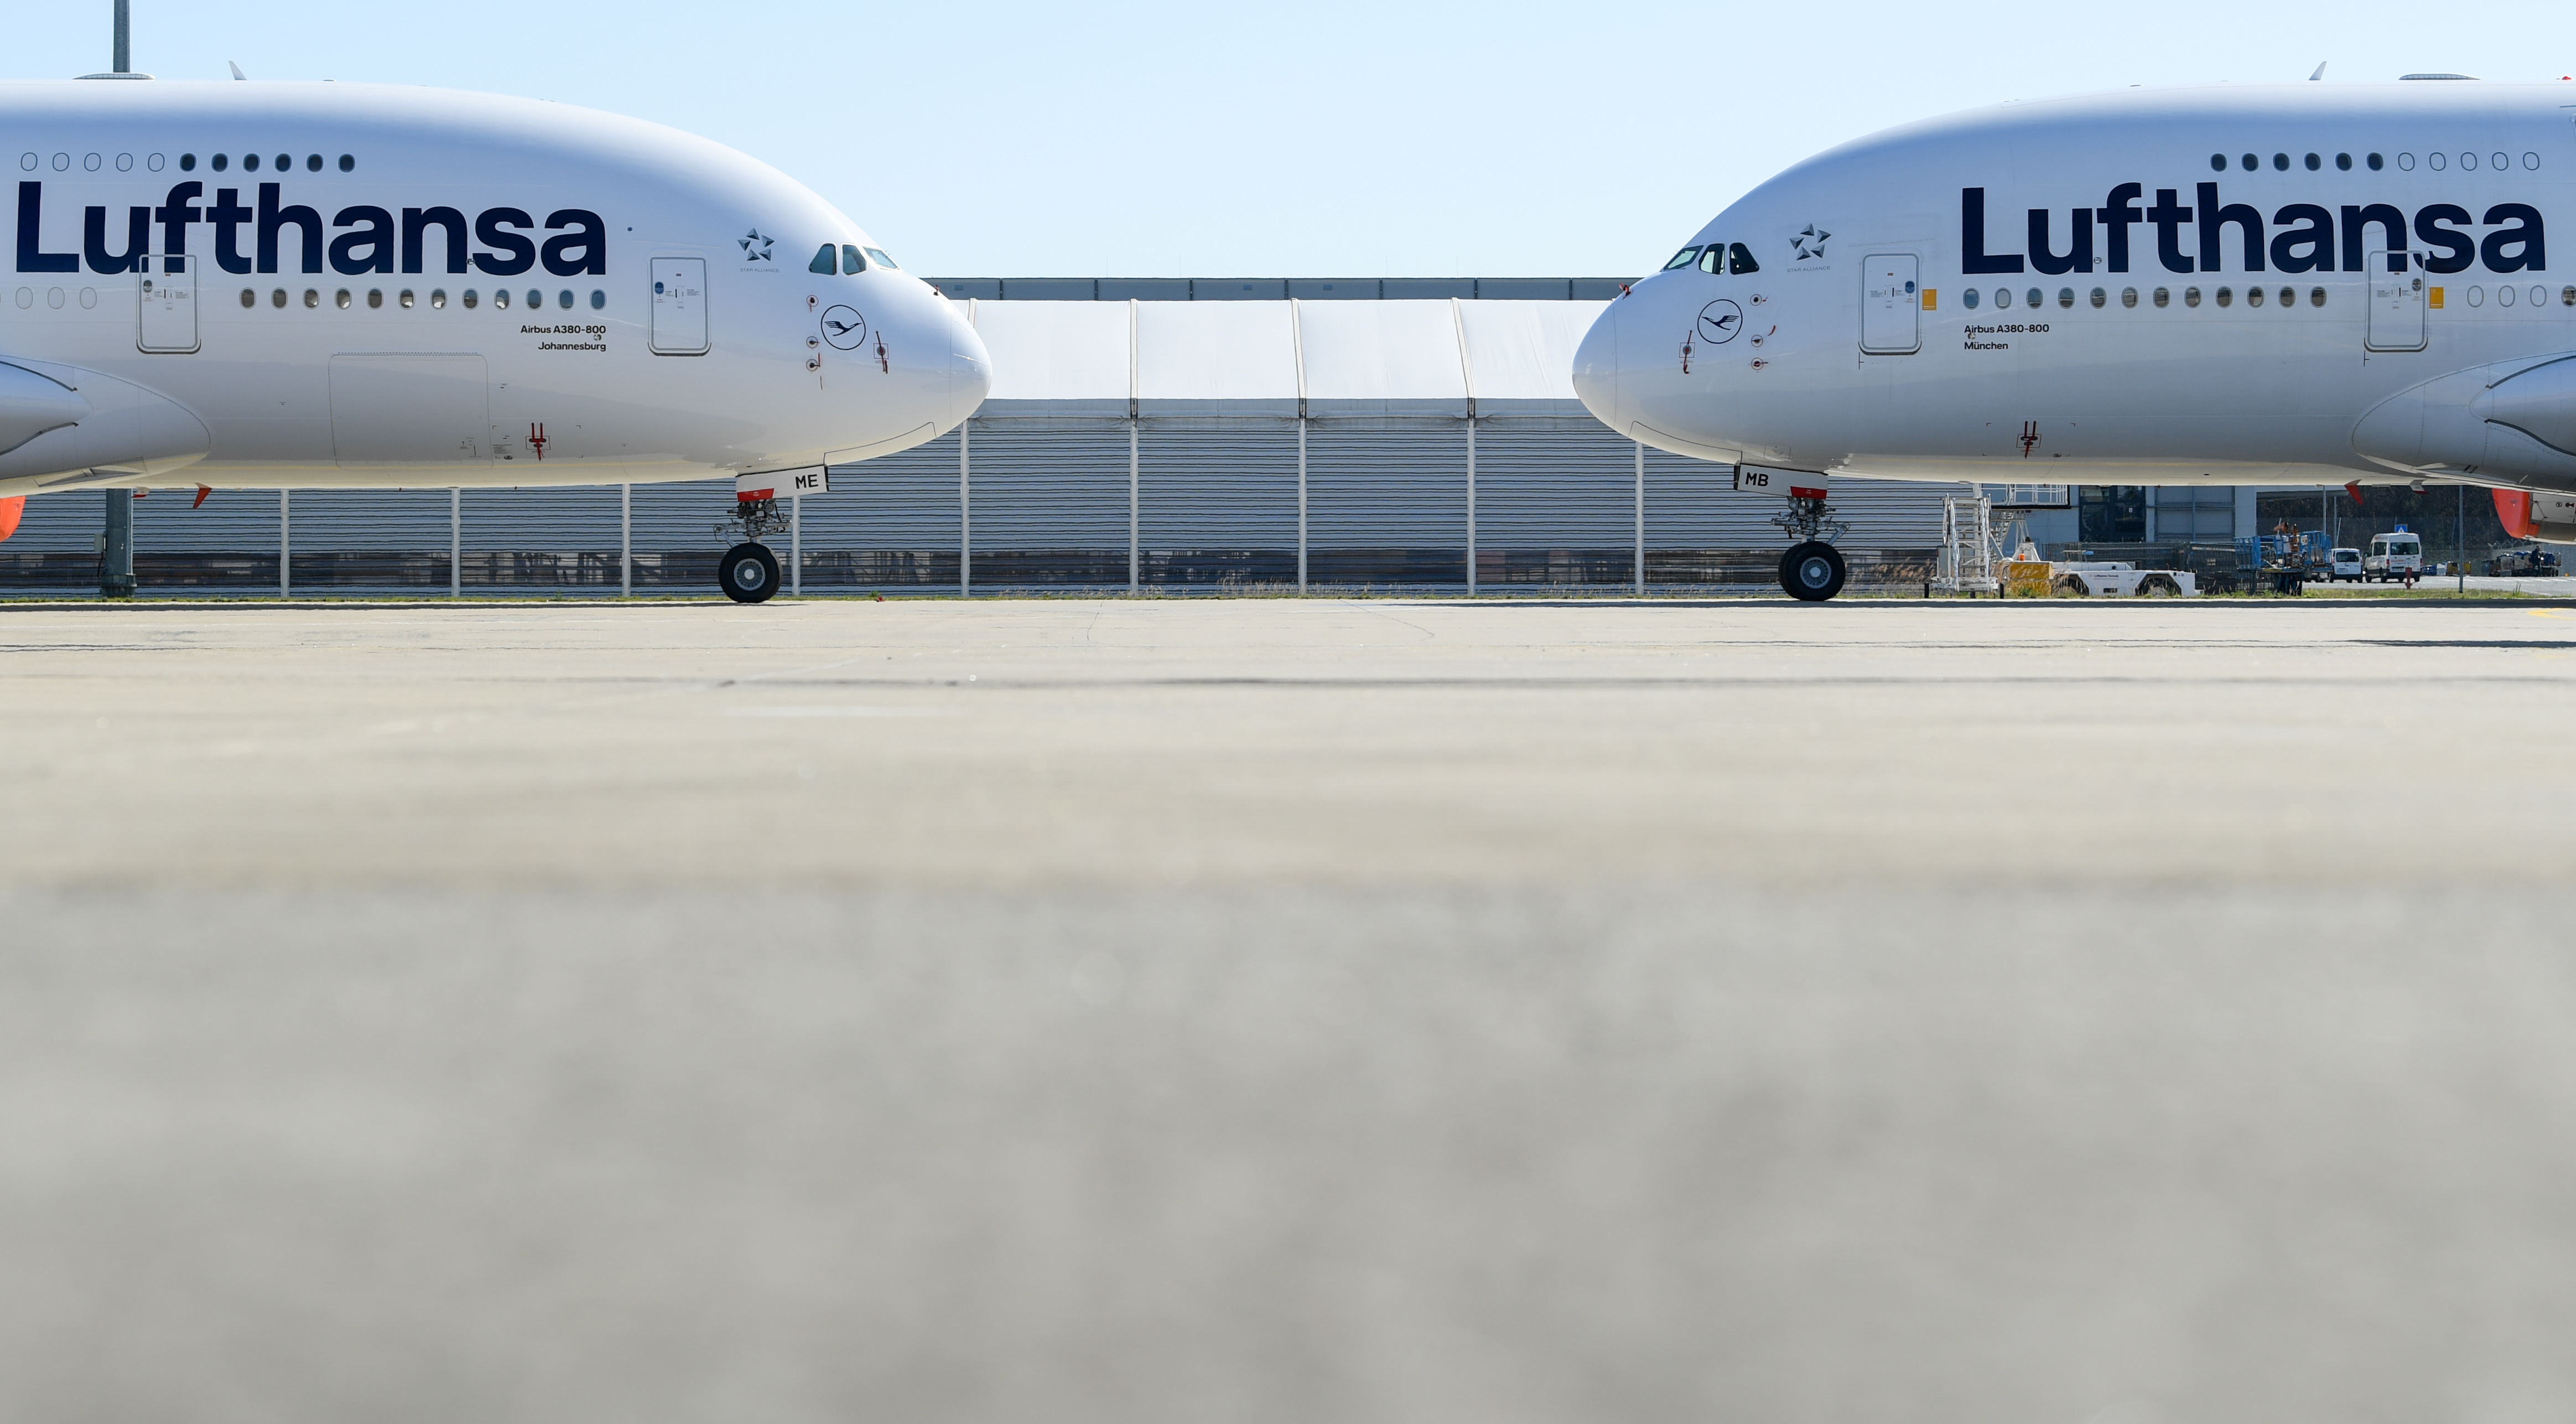 Two Lufthansa planes are seen in Frankfurt, Germany, March 23, 2020.